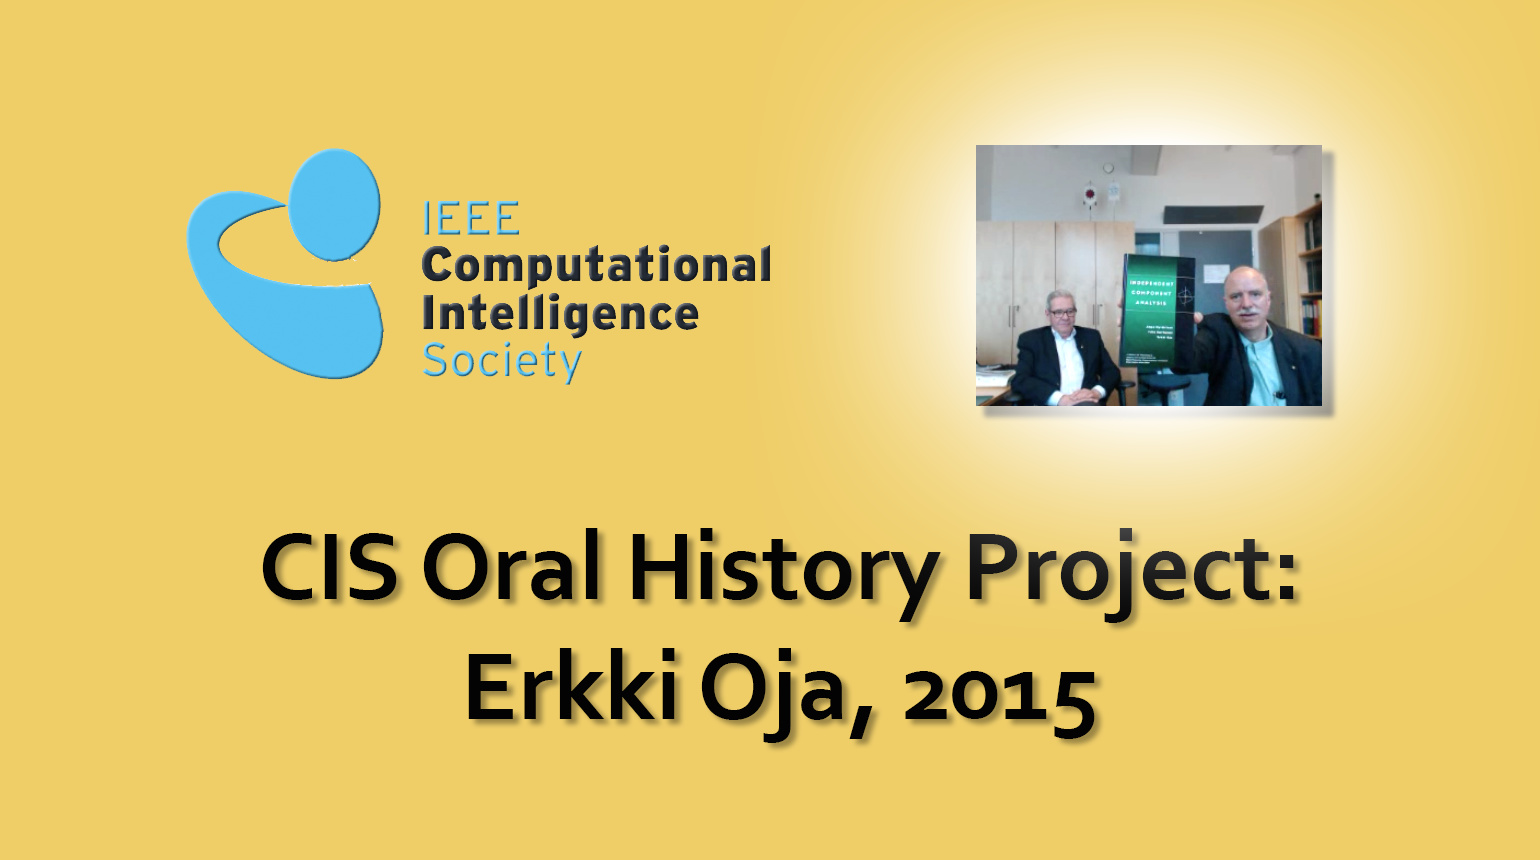 Interview with Erkki Oja, 2015: CIS Oral History Project